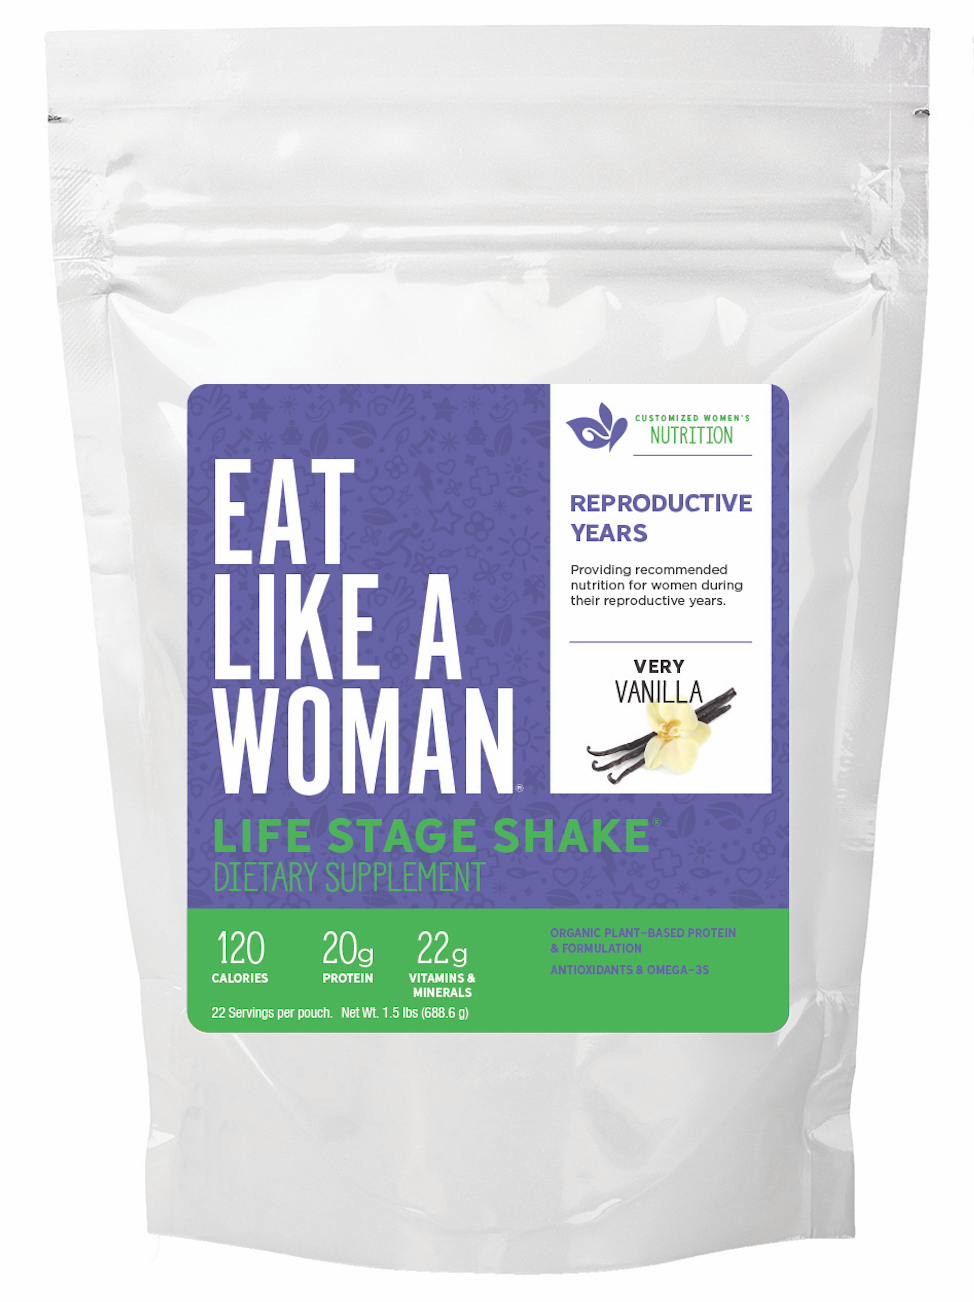 Life Stage Shake™ REPRODUCTIVE YEARS, 1.5 lbs, 22 servings